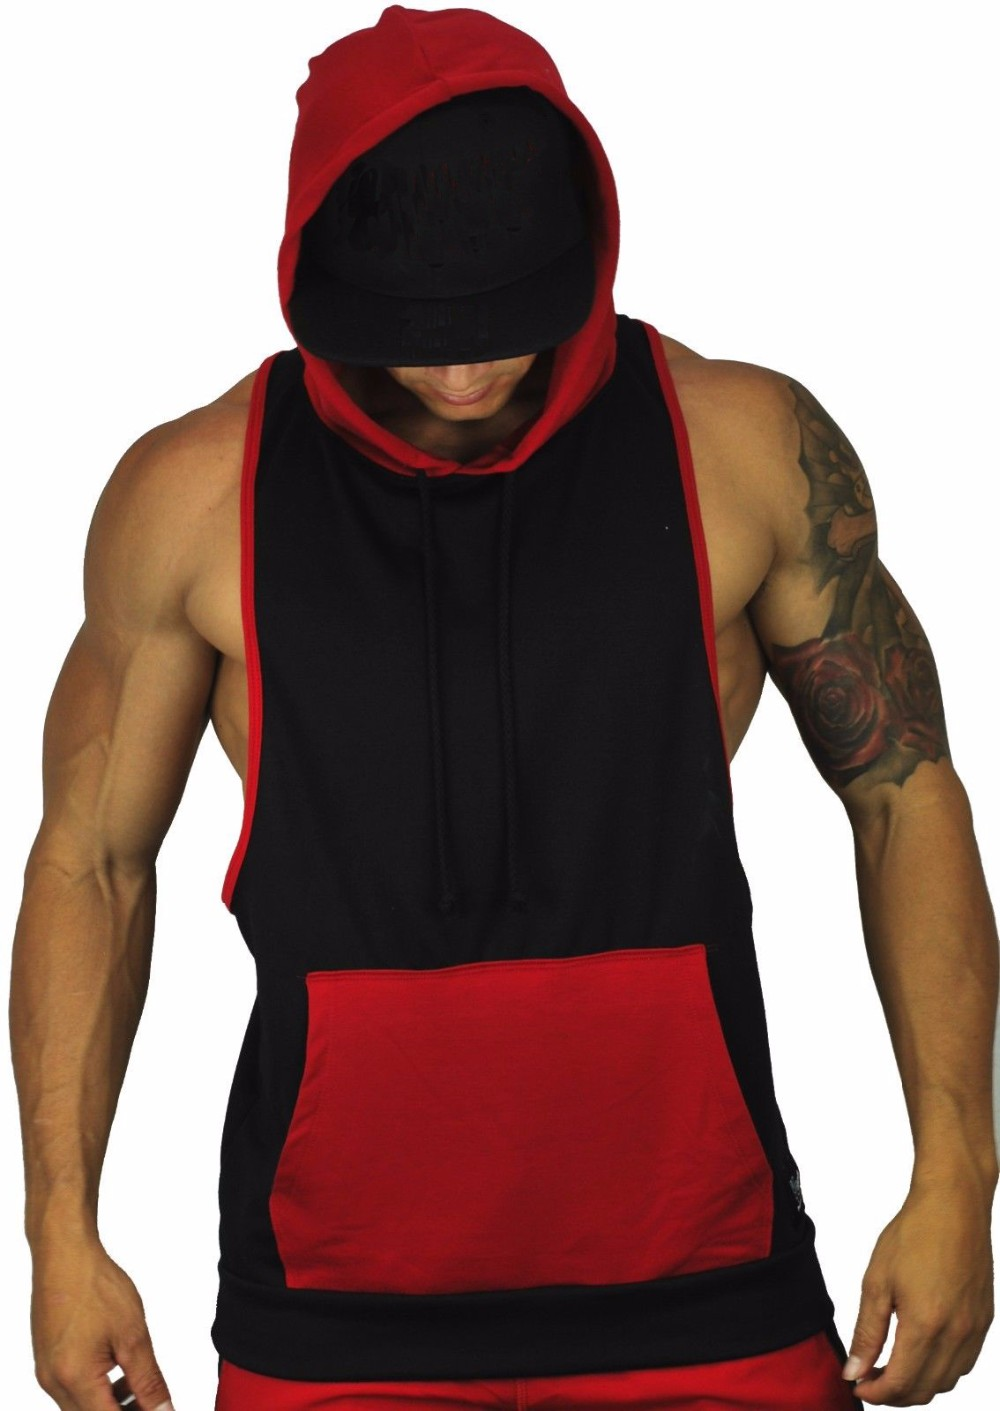 ATHLETIC RUNNING GYM MUSCLE COOL BODY BUILDING VEST COTTON 3XL 4XL 5XL 6XL new